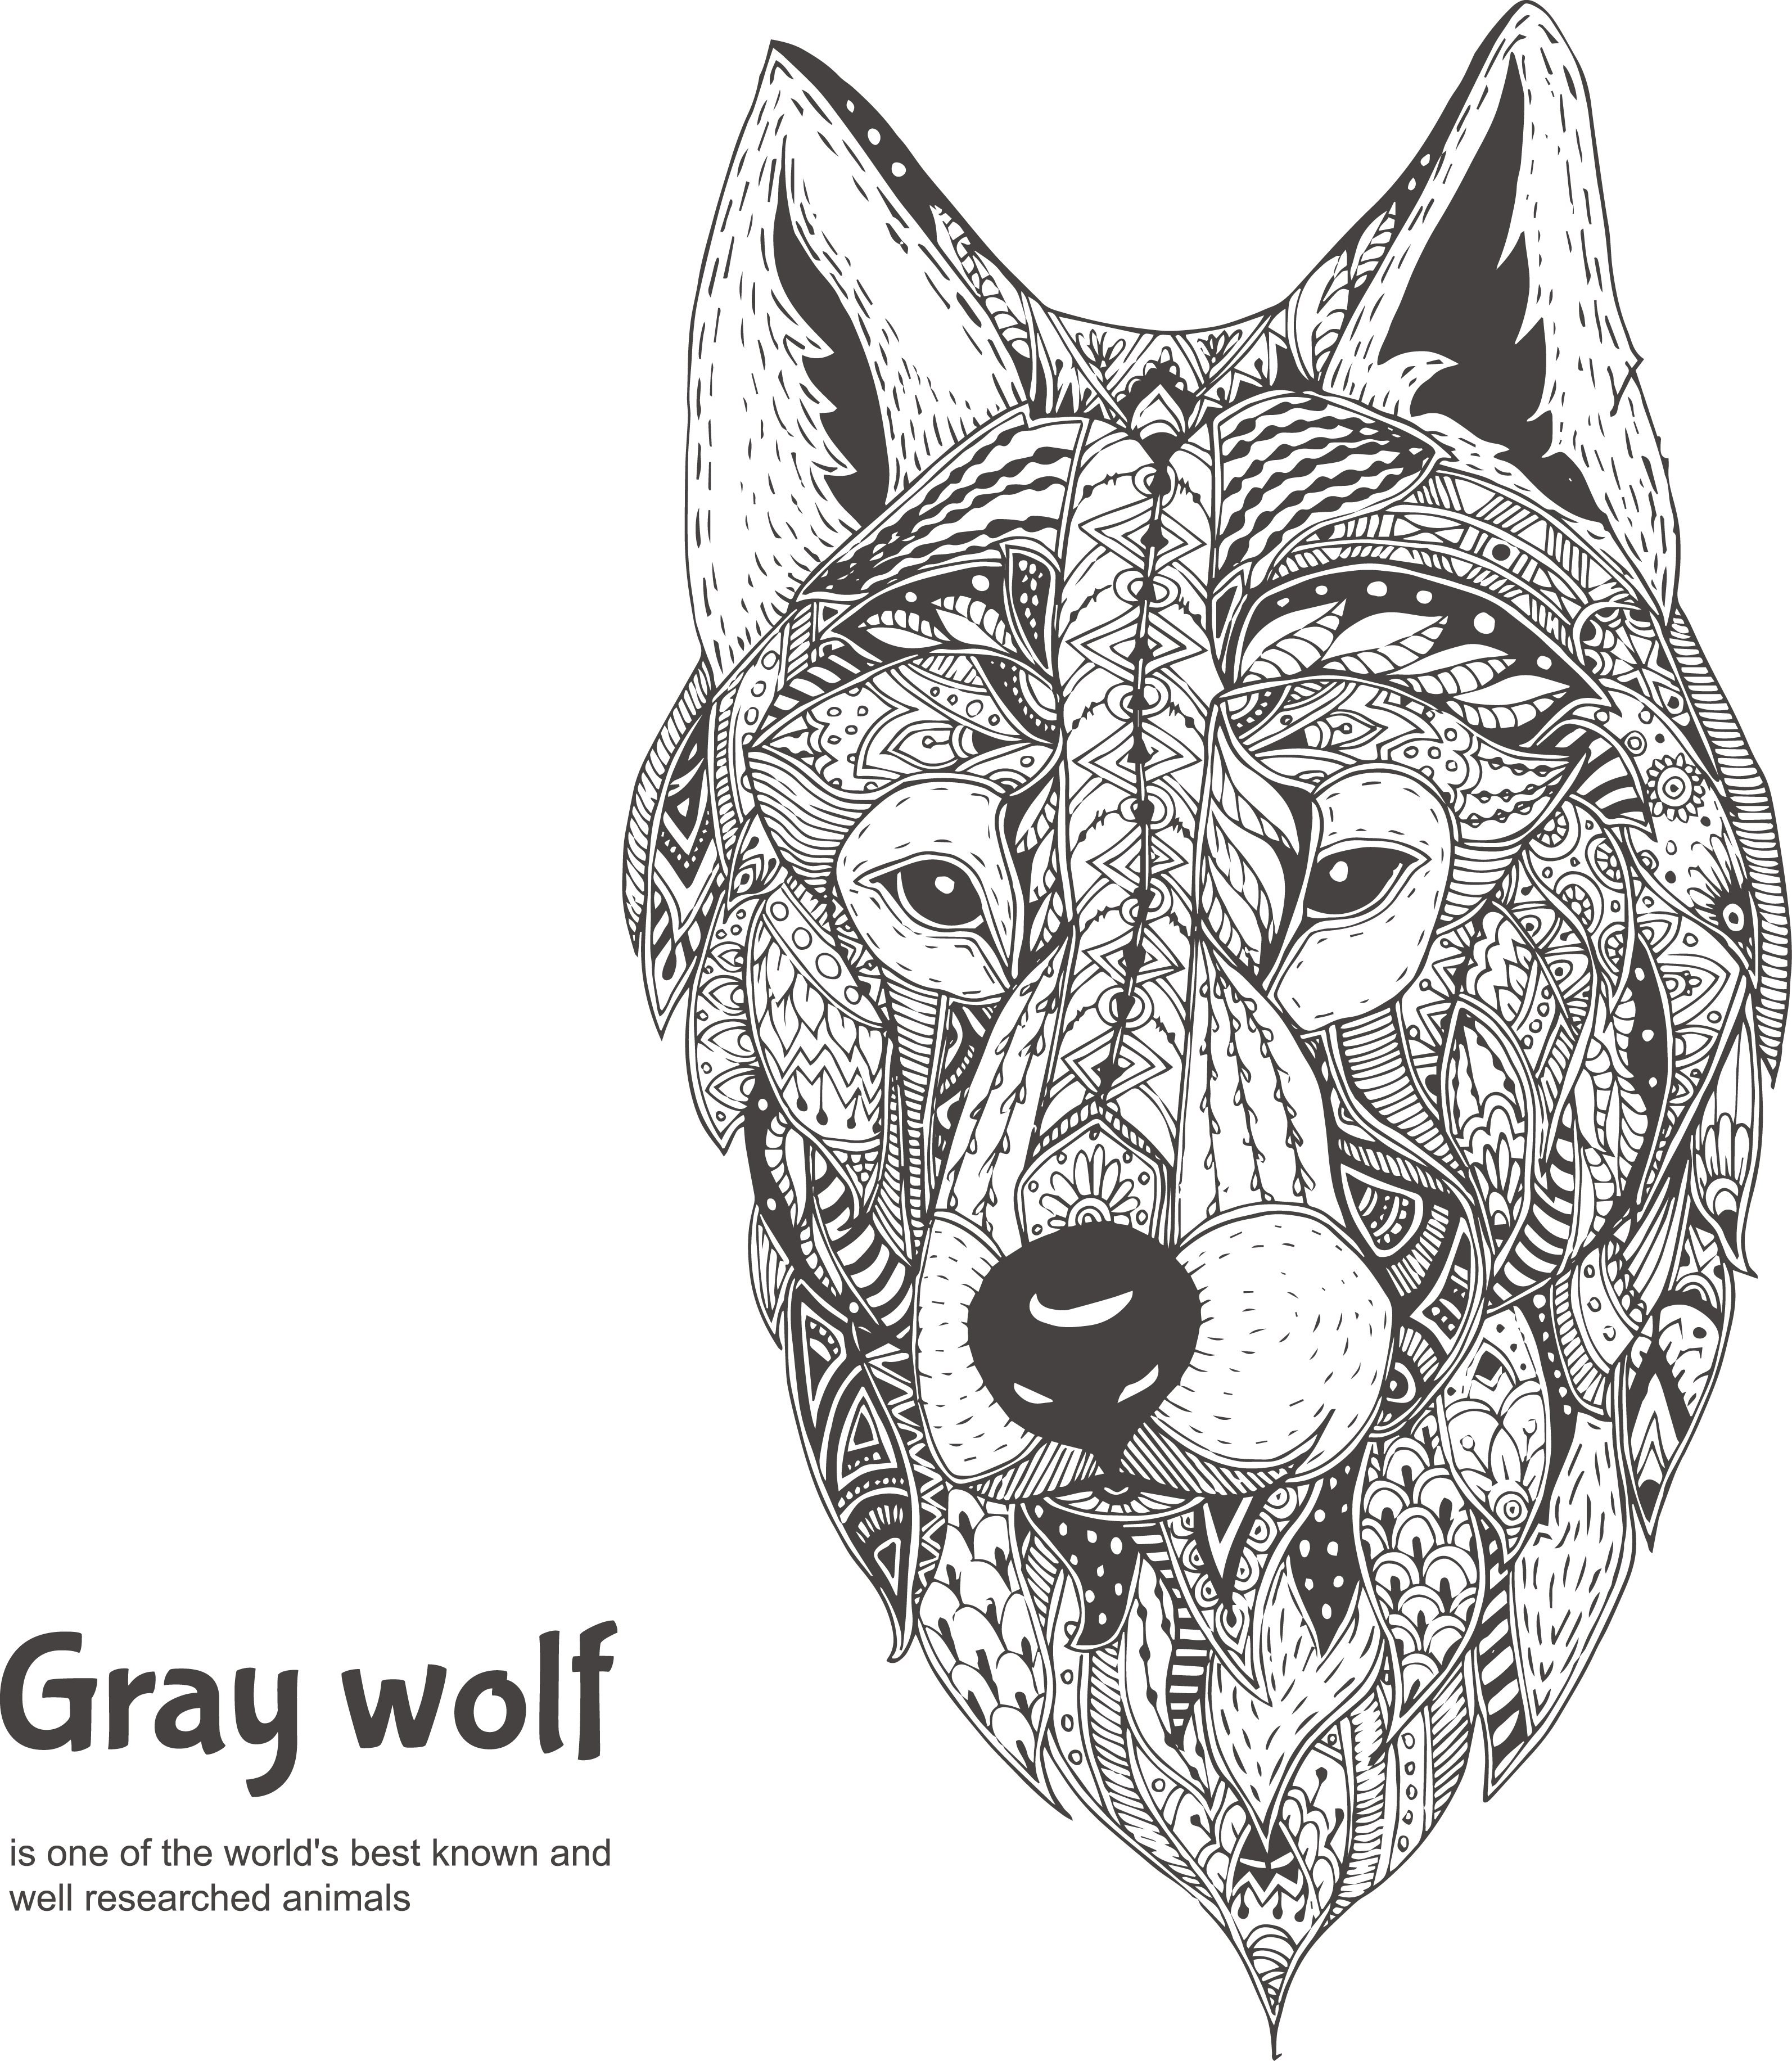 Drawing medium black and white. Gray wolf illustration hand